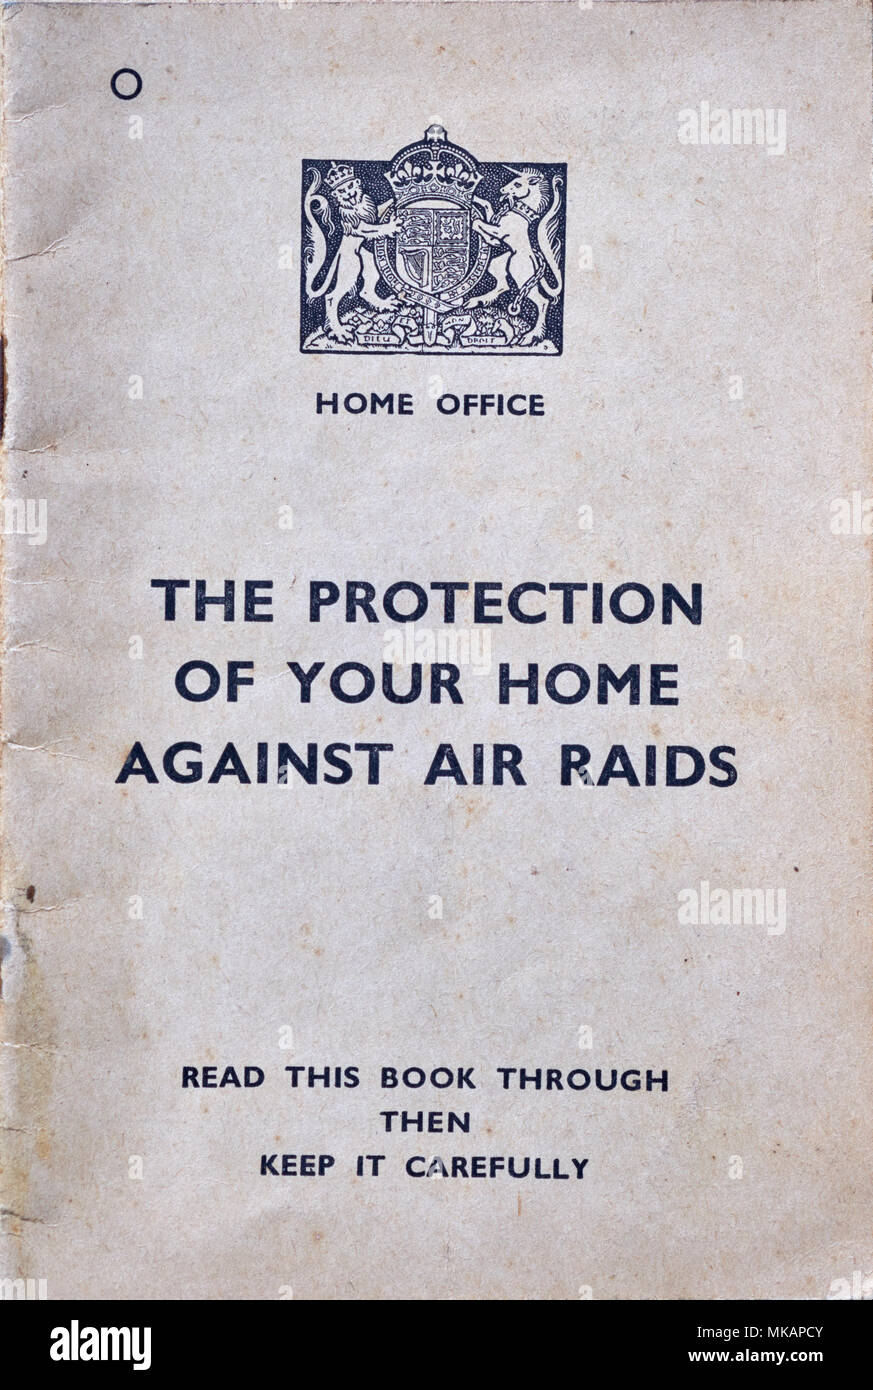 THE PROTECTION OF YOUR HOME AGAINST AIR RAIDS, HOME OFFICE, SECOND WORLD WAR, BRITAIN, BRITISH - Stock Image